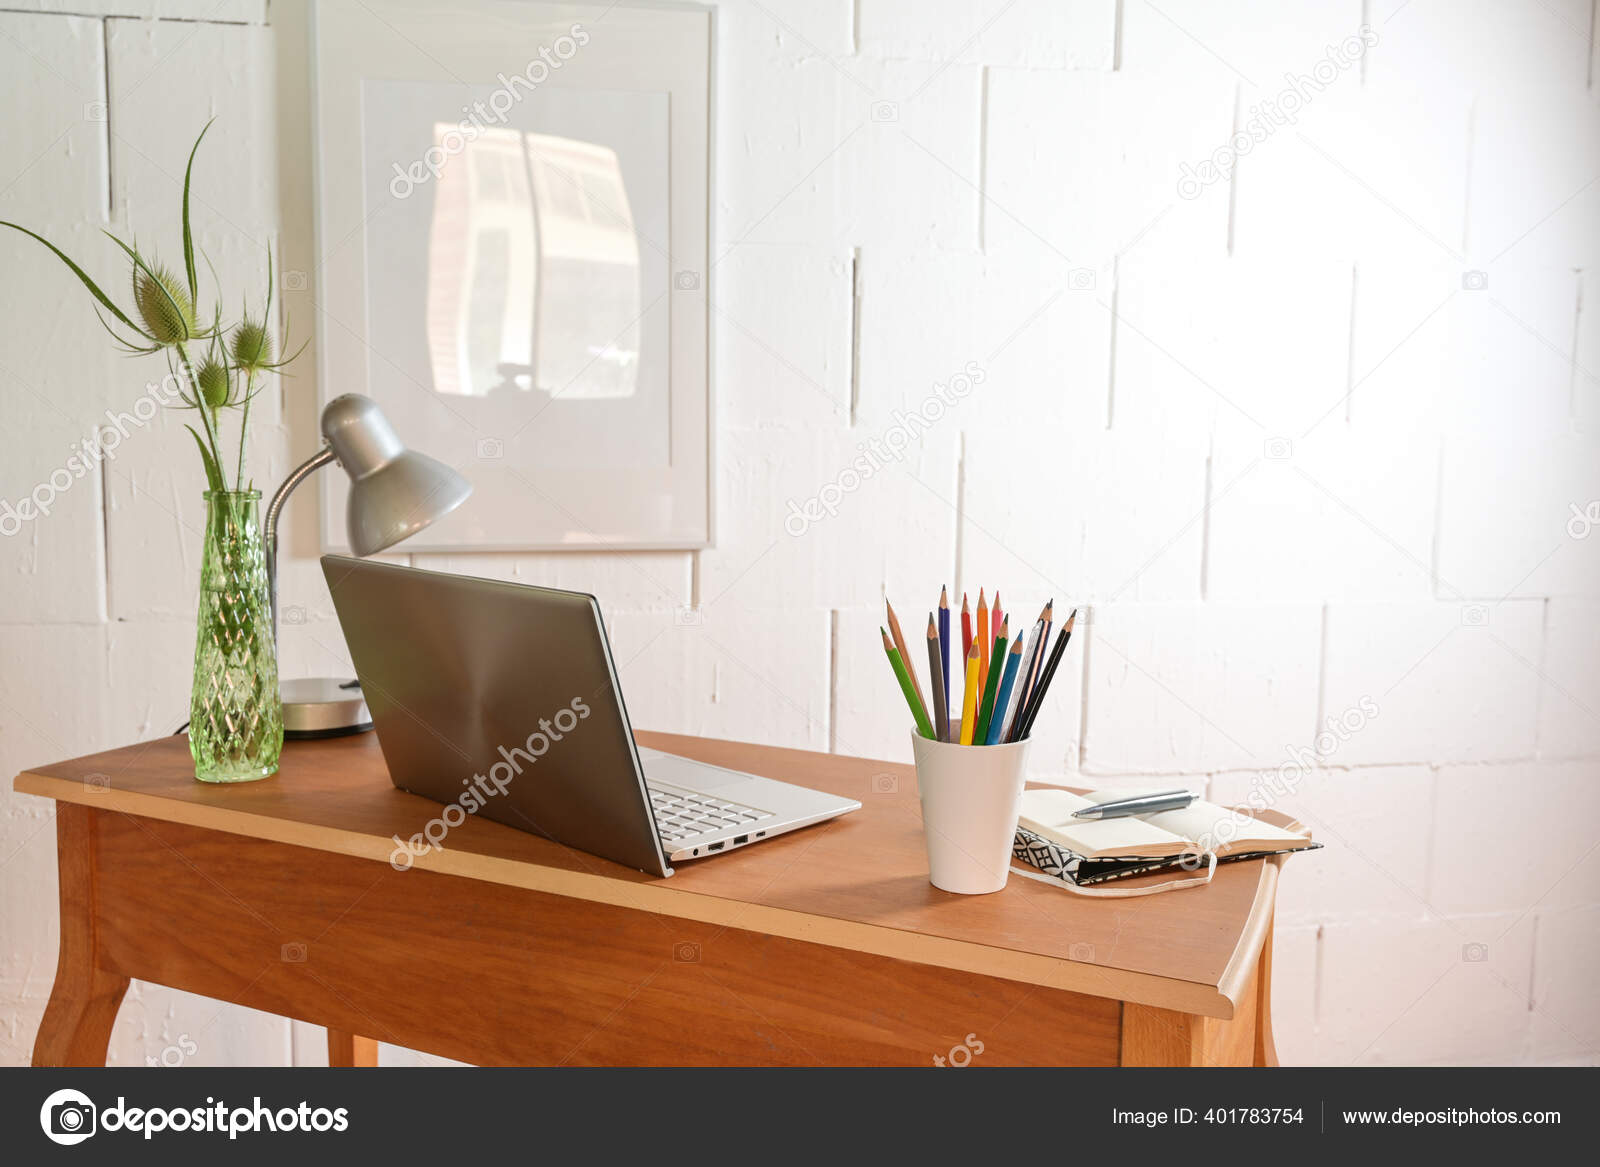 Small Wooden Home Office Desk Laptop Tools Rough White Wall Stock Photo C Fermate 401783754